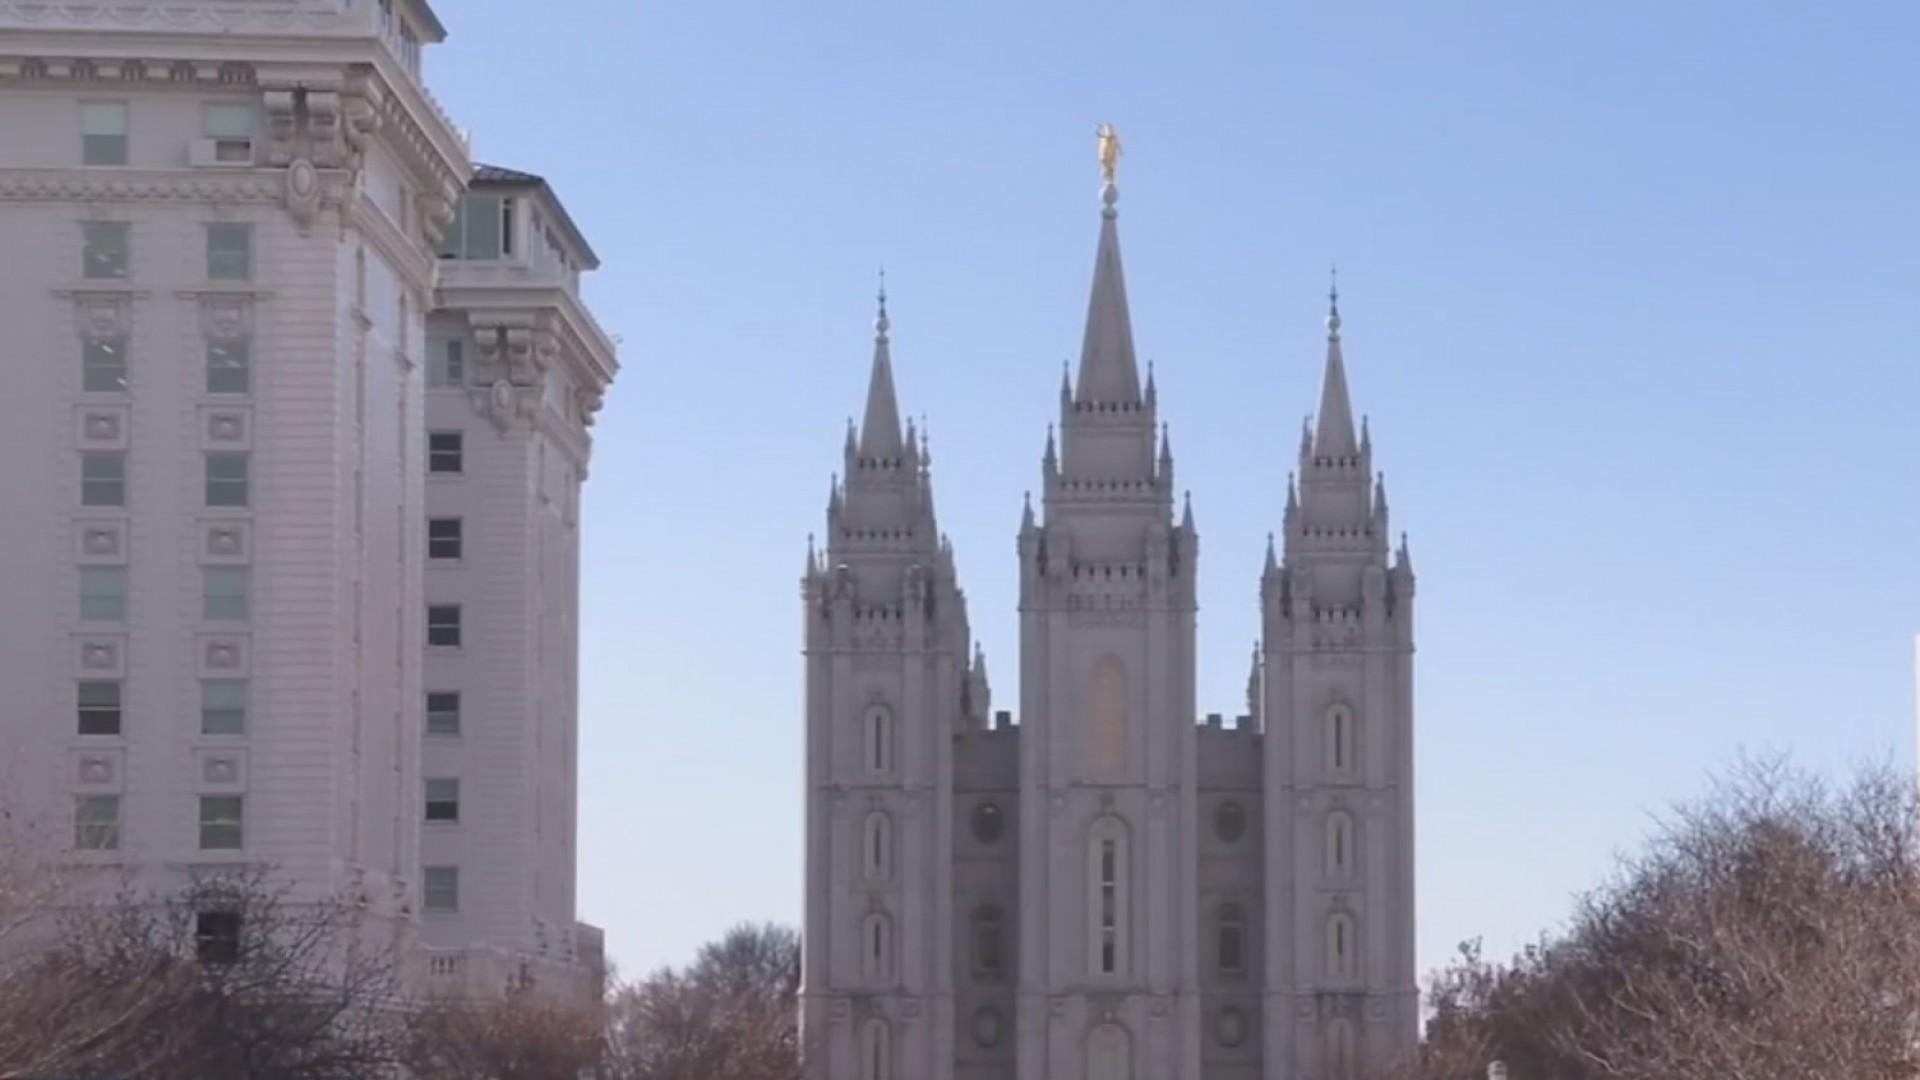 LDS_Church_declares_it_does_not_oppose_h_0_20190125033637